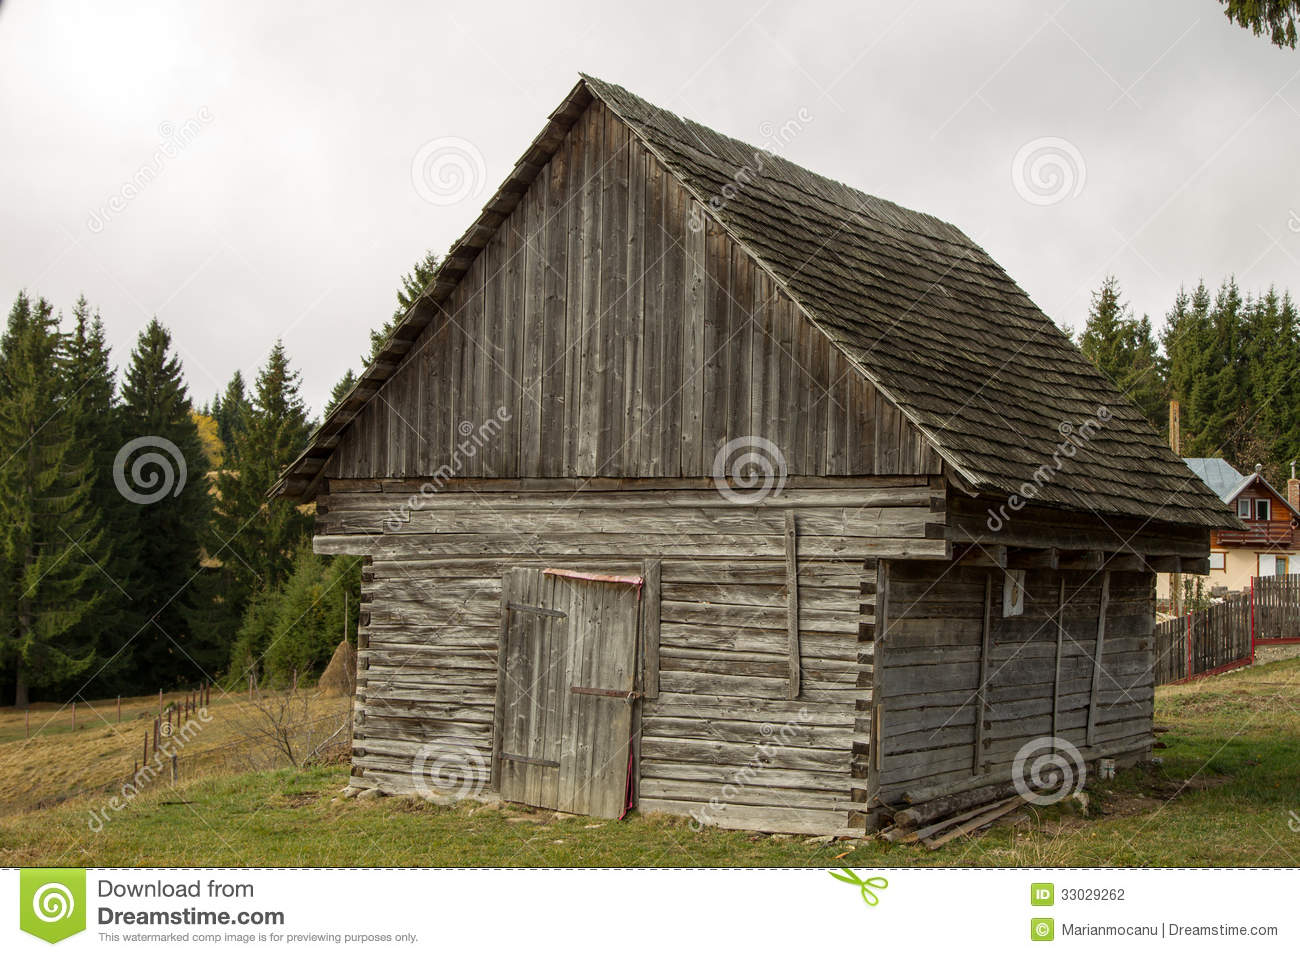 wooden hut near mountain - photo #23